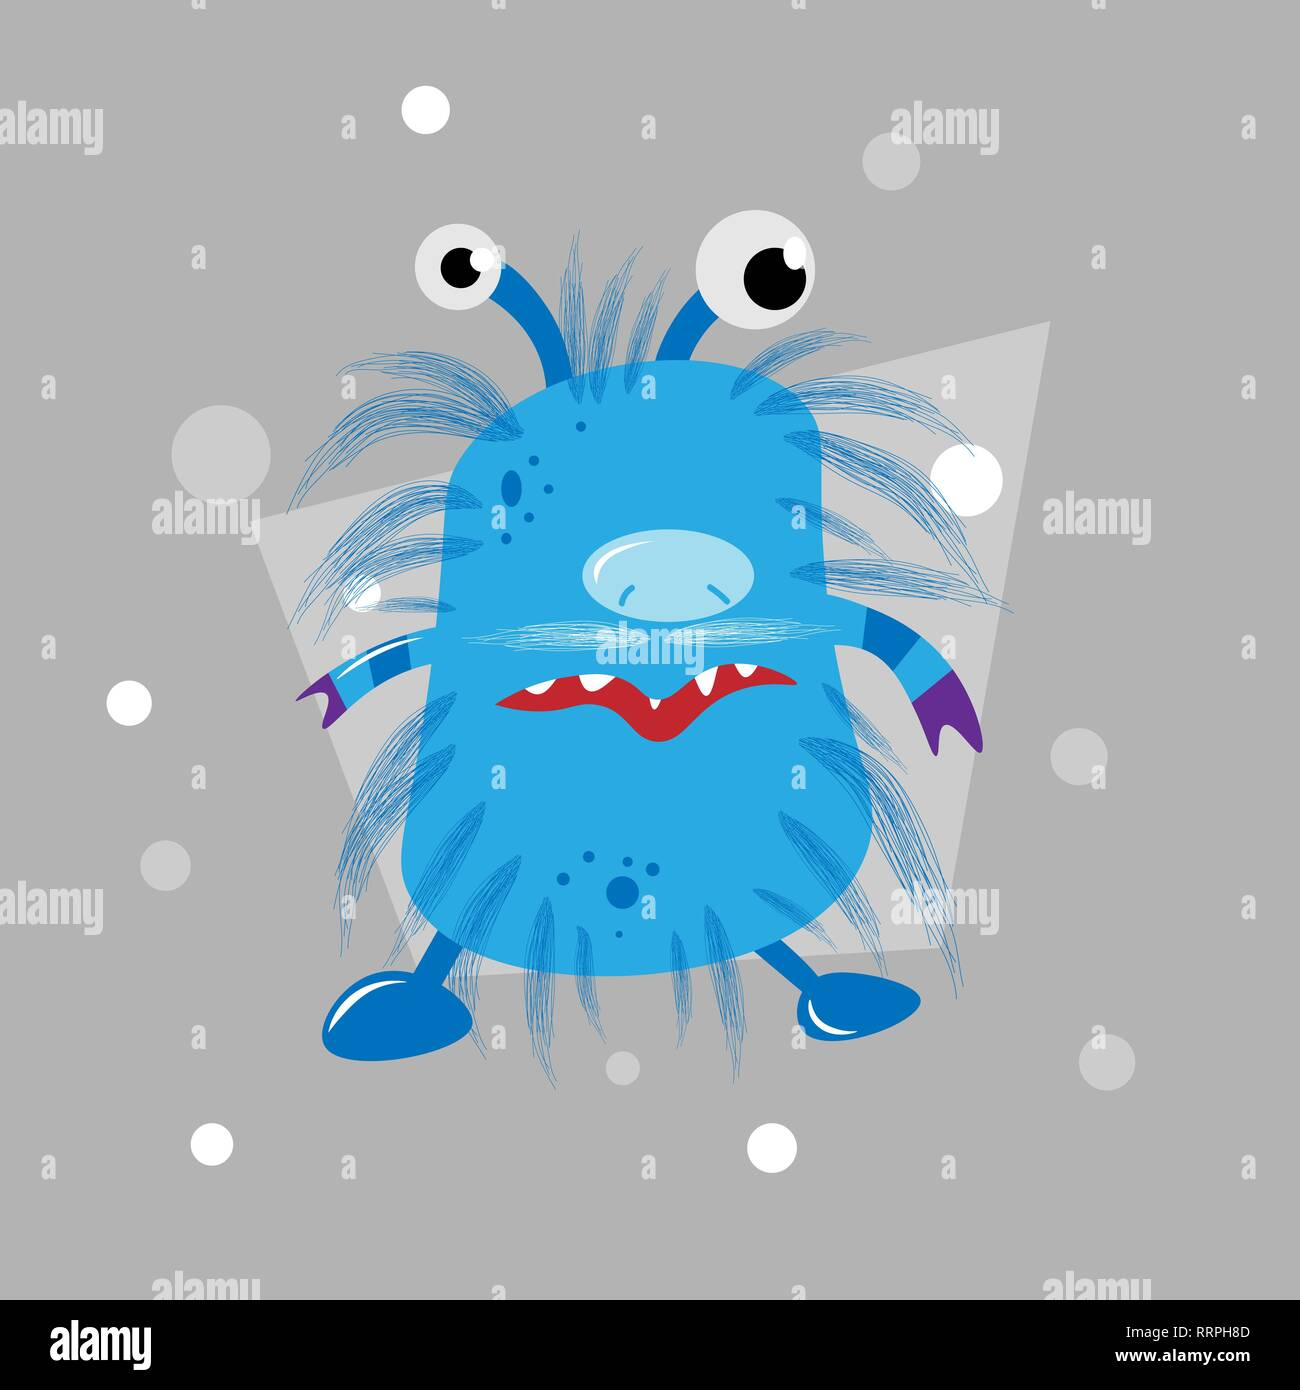 cartoon cool fat monster. vector monster character 10 eps - Stock Image